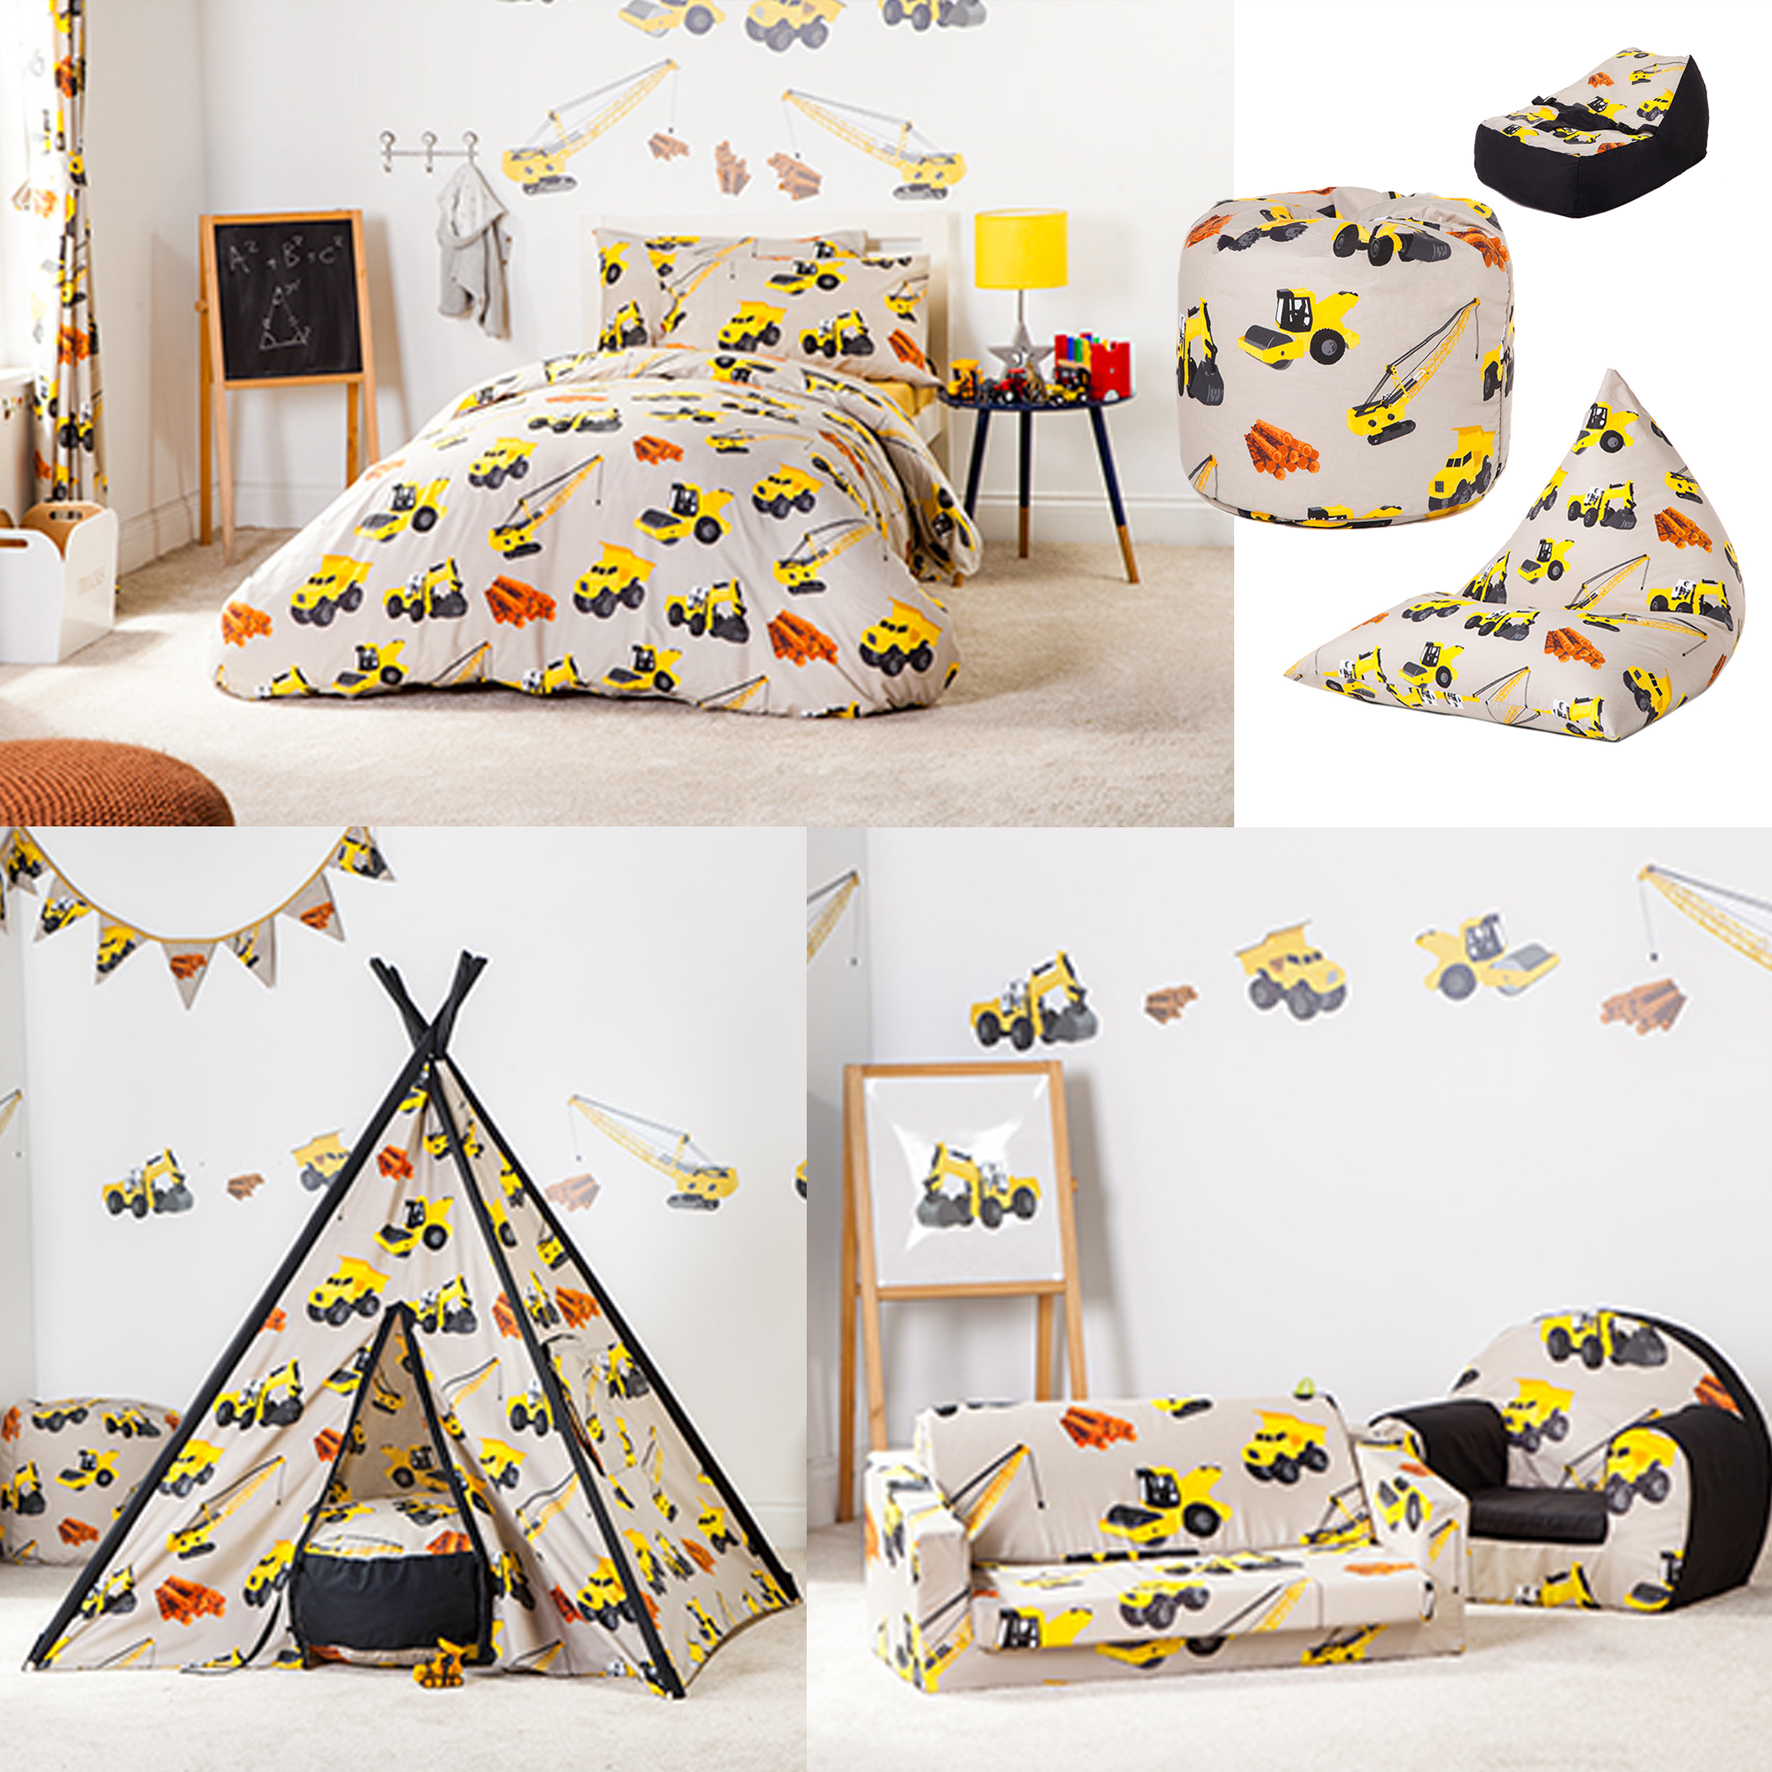 gr ber design kinder bettw sche schlafzimmer m bel sammlung kindergarten ebay. Black Bedroom Furniture Sets. Home Design Ideas